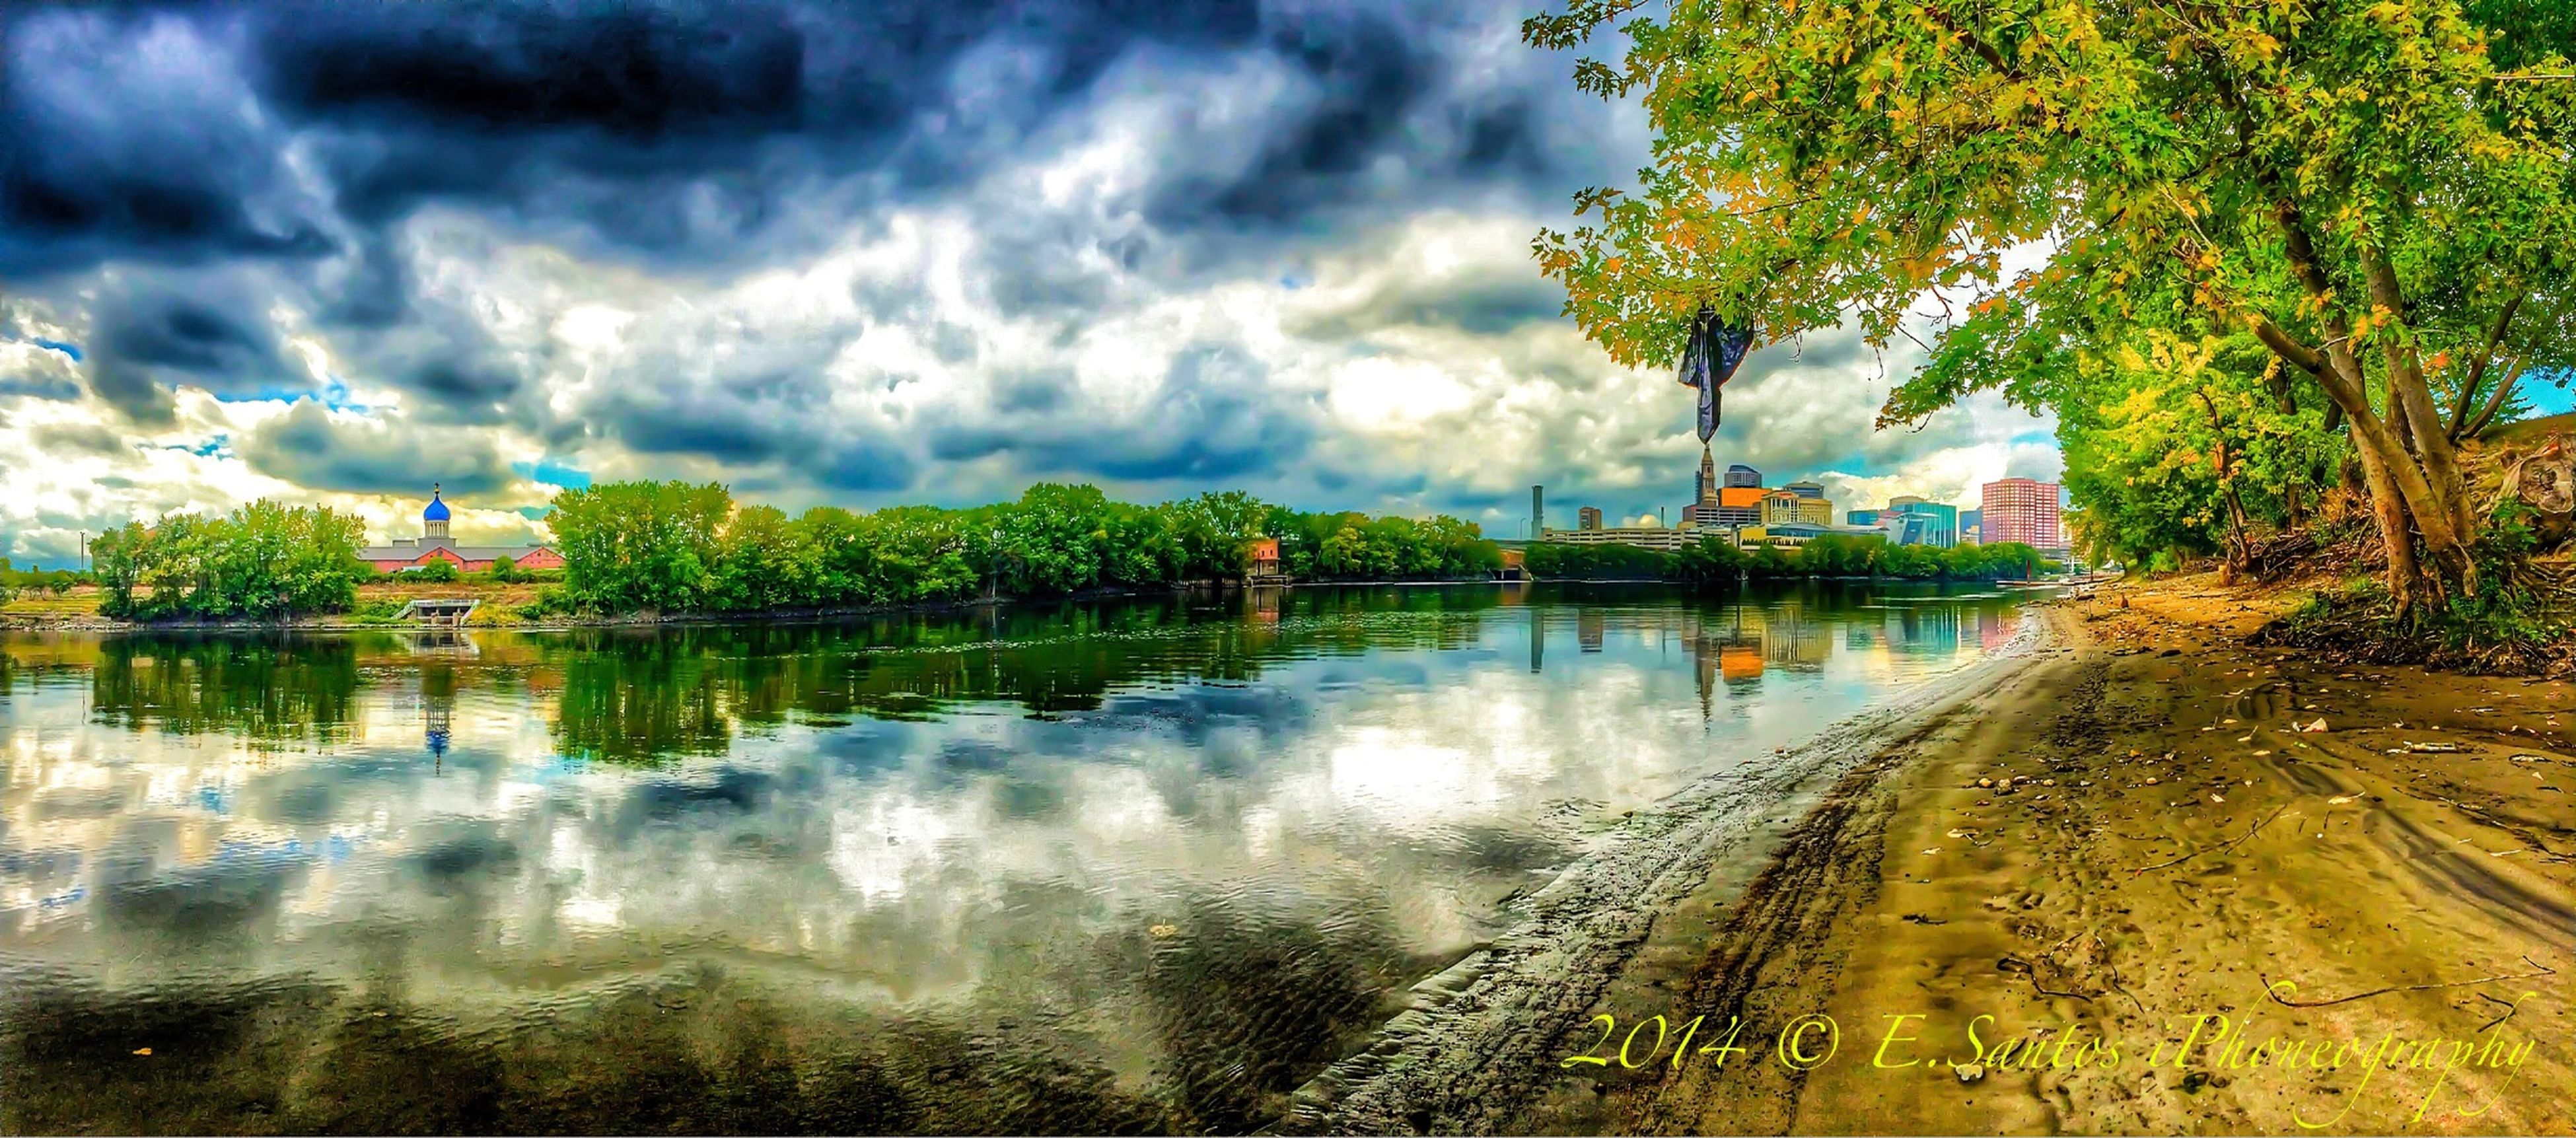 sky, water, cloud - sky, cloudy, tree, built structure, architecture, transportation, reflection, building exterior, weather, cloud, river, nature, waterfront, overcast, road, outdoors, beauty in nature, tranquility